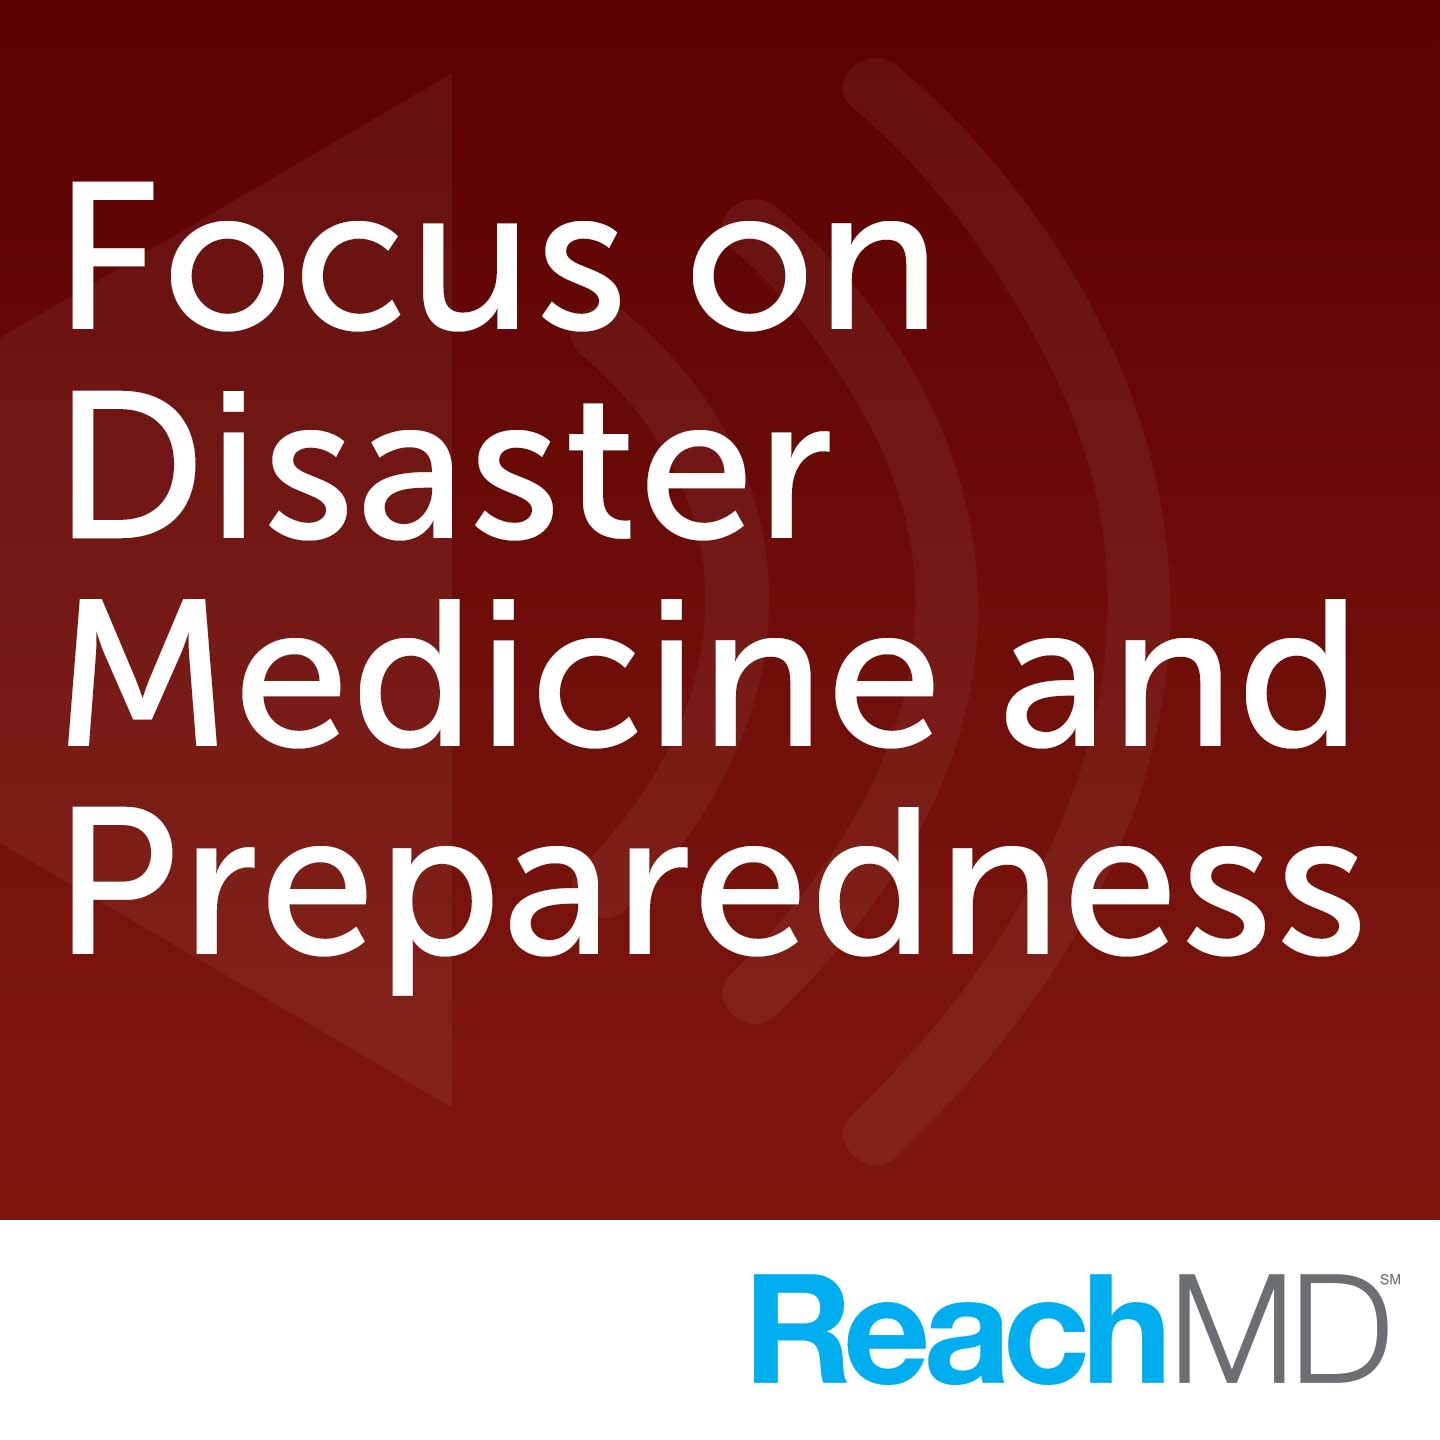 Focus on Disaster Medicine and Preparedness